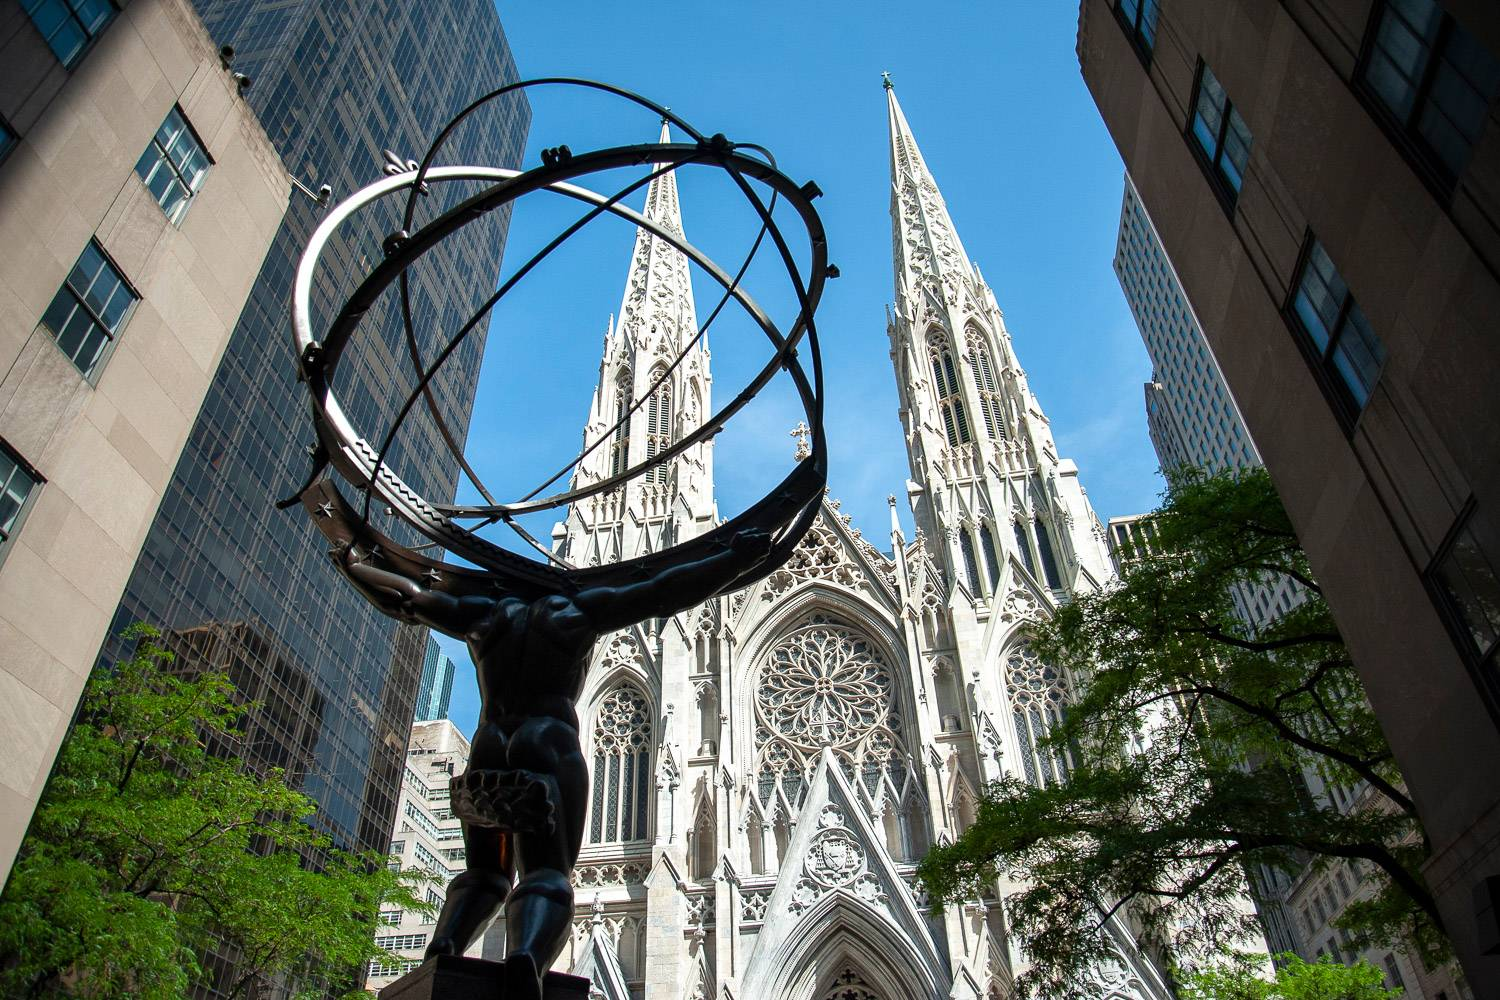 Image of St. Patrick's Cathedral in Midtown Manhattan with statue of Atlas with the world on his shoulders in the foreground